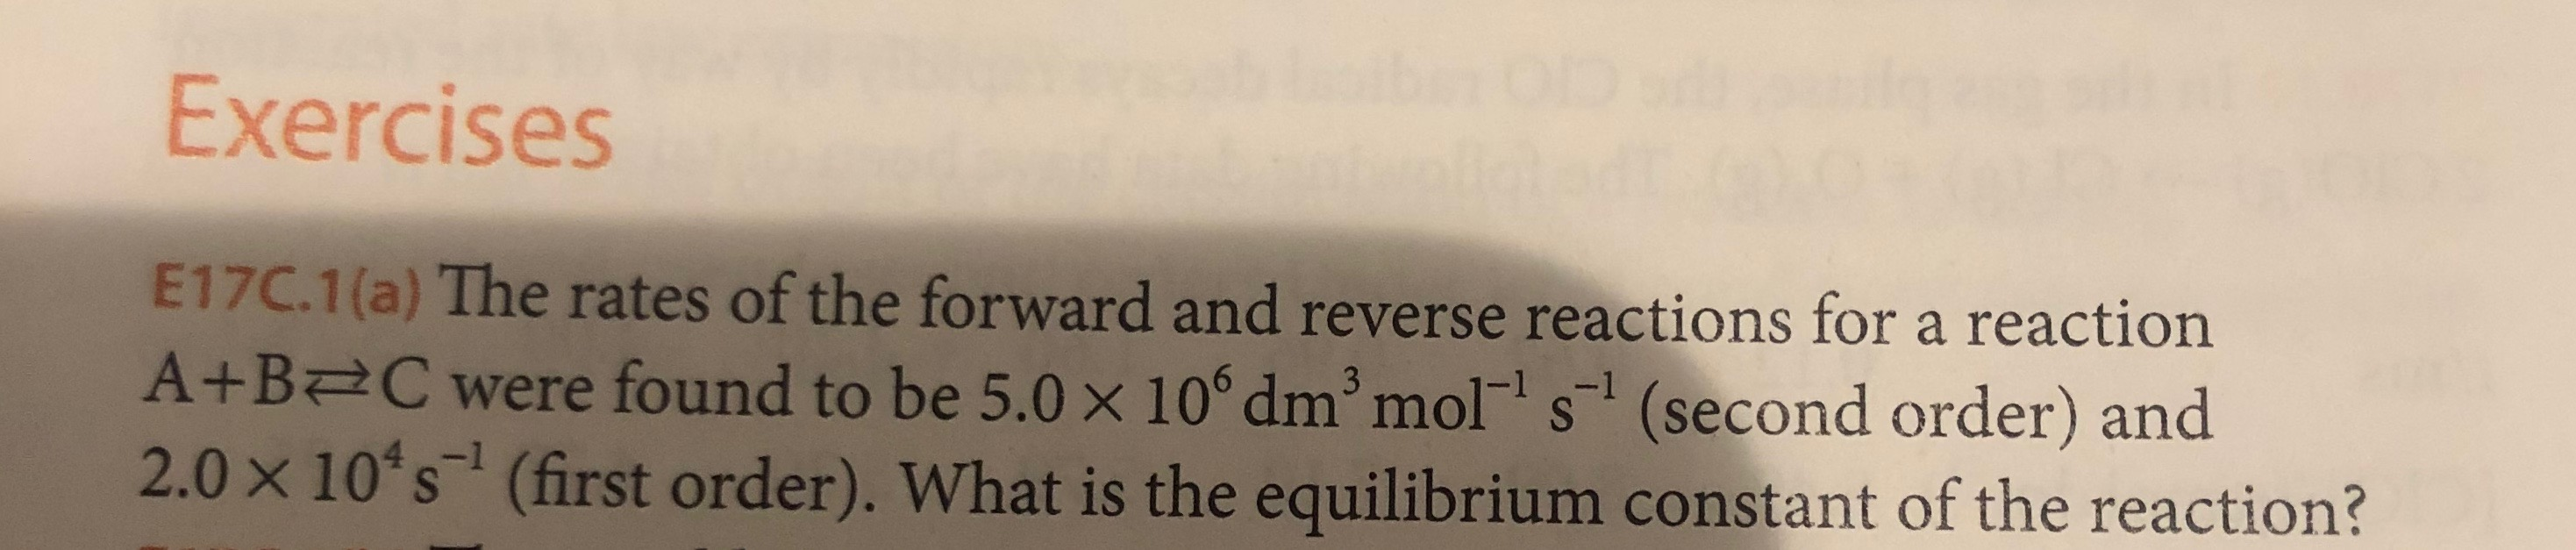 Exercises E17C.1(a) The rates of the forward and reverse reactions for a reaction A+B C were found to be 5.0 x 10° dm mol s (second order) and 2.0 x 10 s (first order). What is the equilibrium constant of the reaction? 3